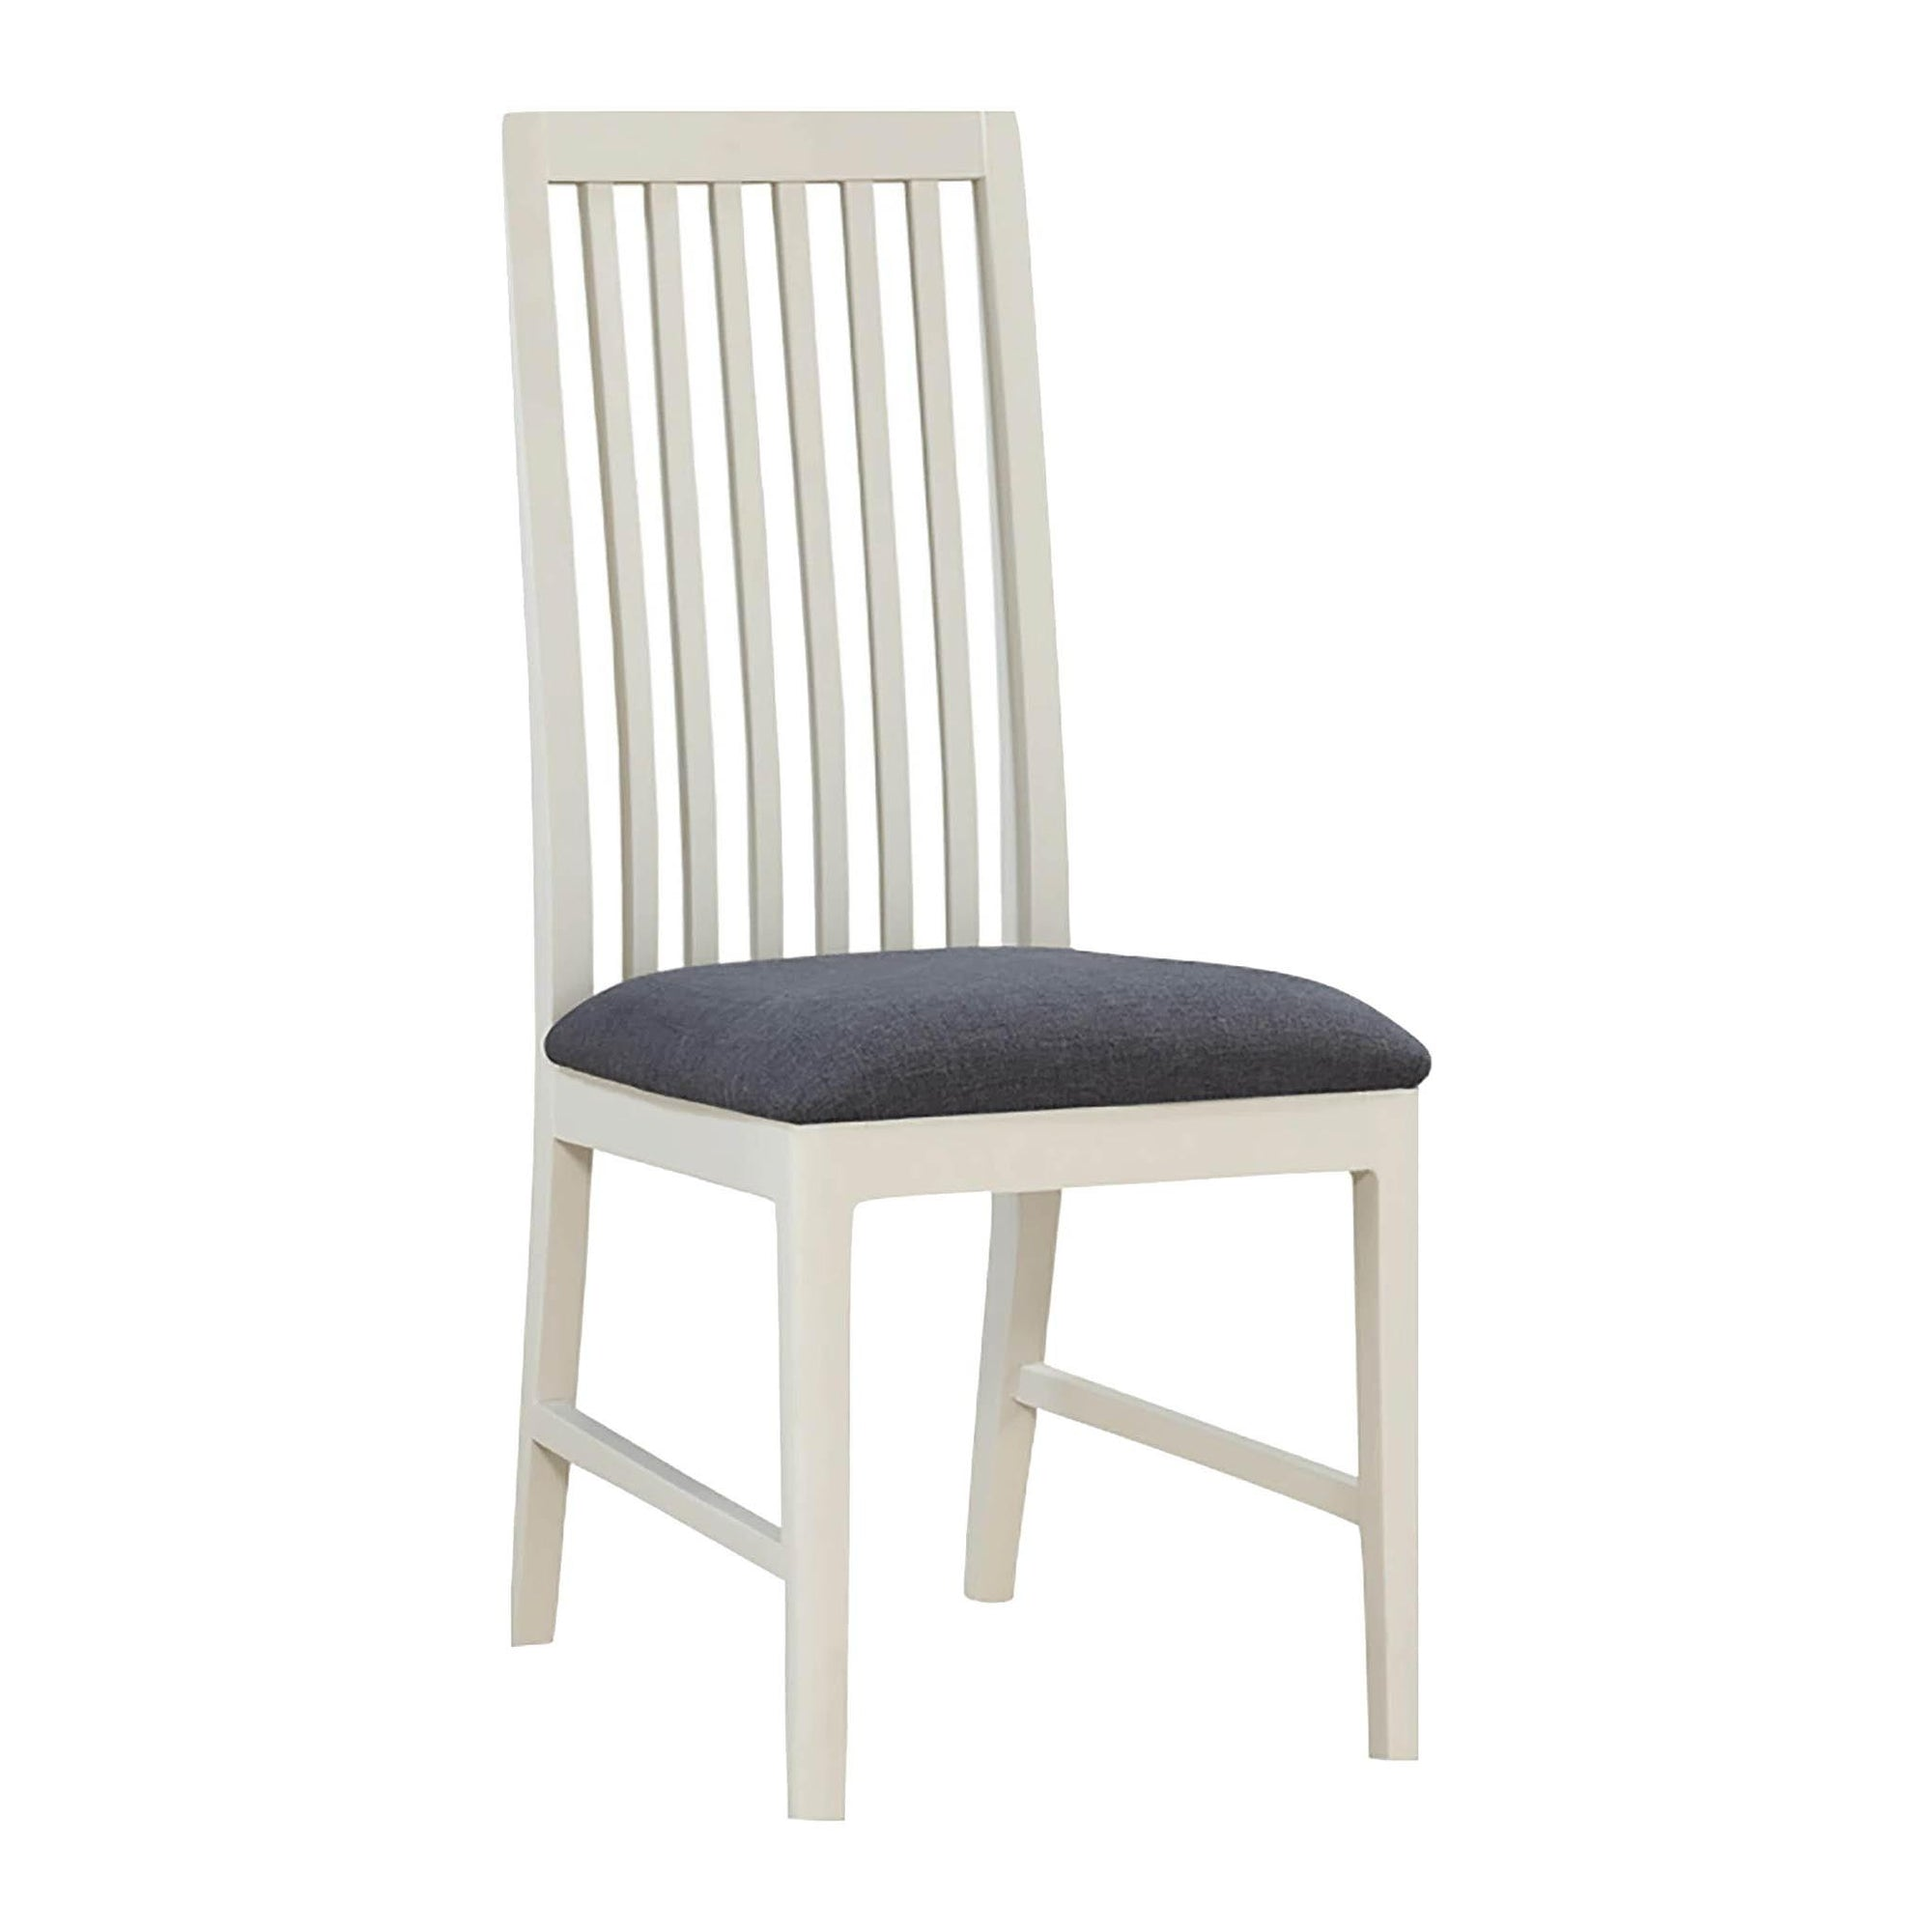 Dunmore Painted Dining Chair by Roseland Furniture